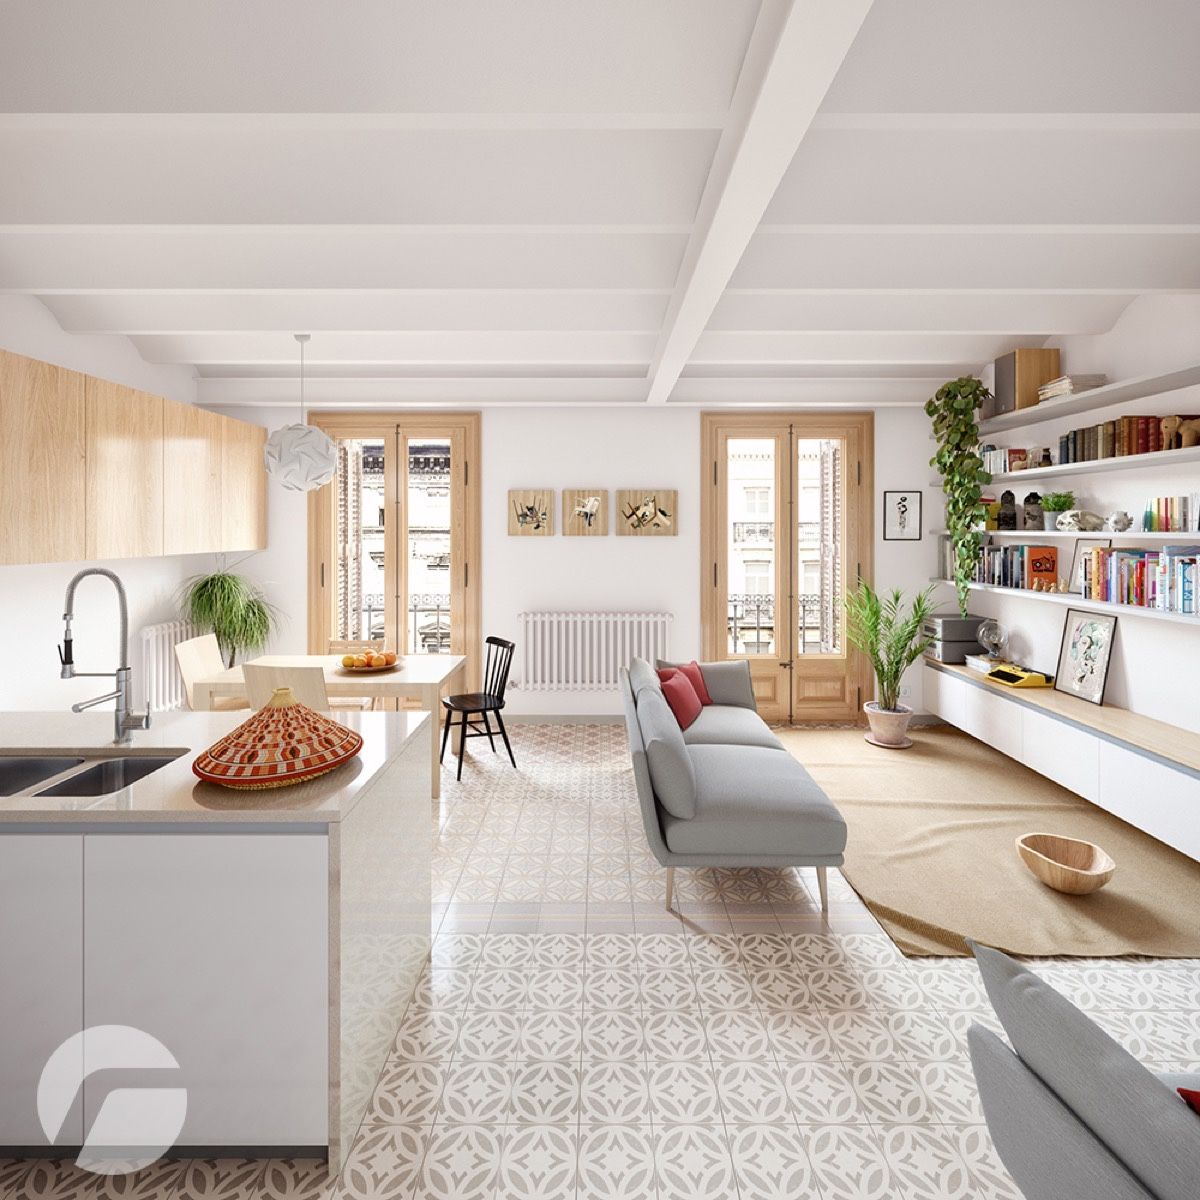 10 Stunning Apartments That Show Off The Beauty Of Nordic Interior Design Apartment Interior Nordic Interior Design Country Style Interiors